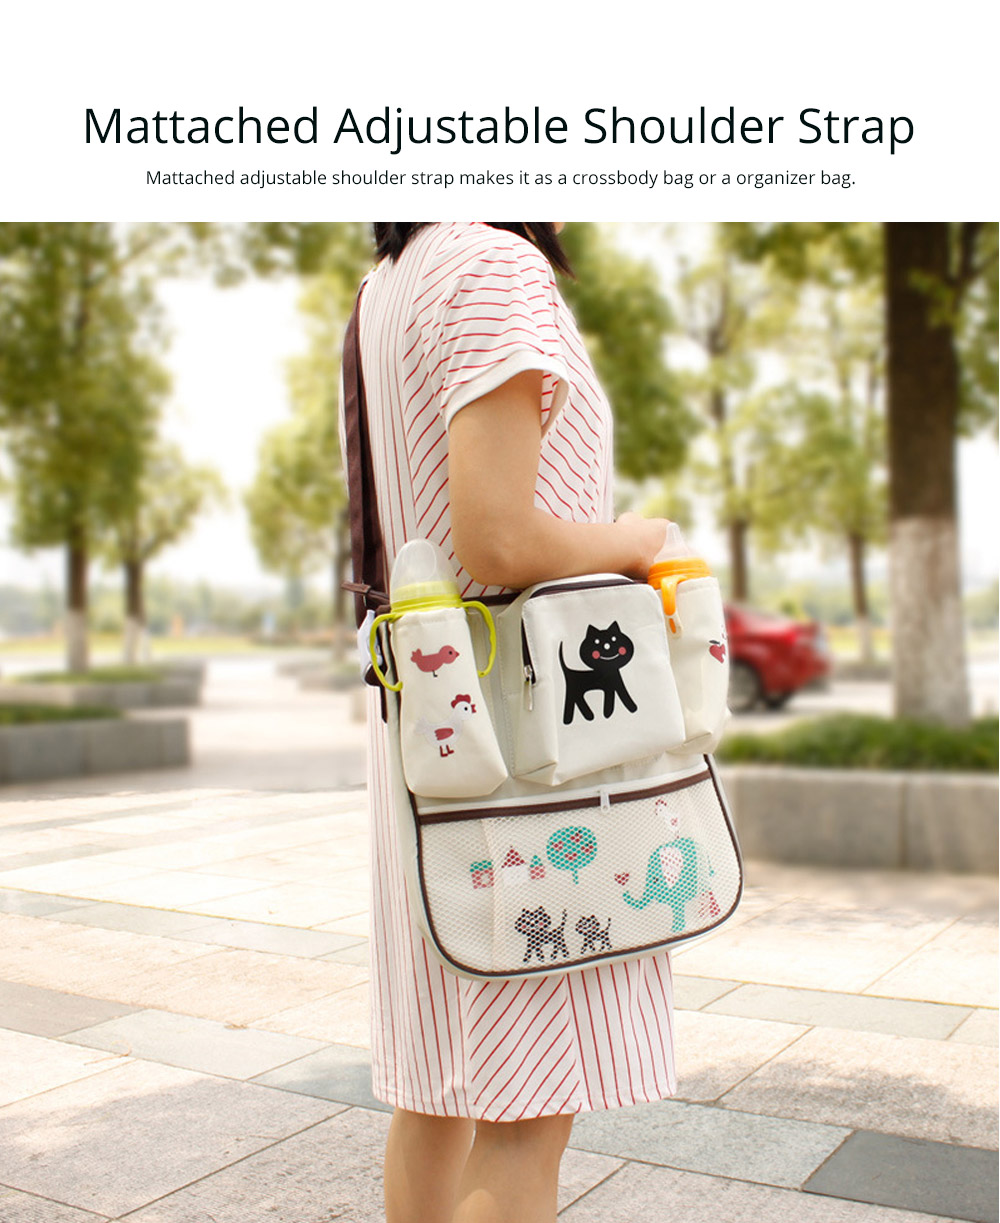 Durable Stroller Organizer Bag for Shipping or Walking, Universal Multipurpose Portable Stroller Organizer Bag with Multiple Compartments Compatible for Shipping Bags, Baby Carriages 13